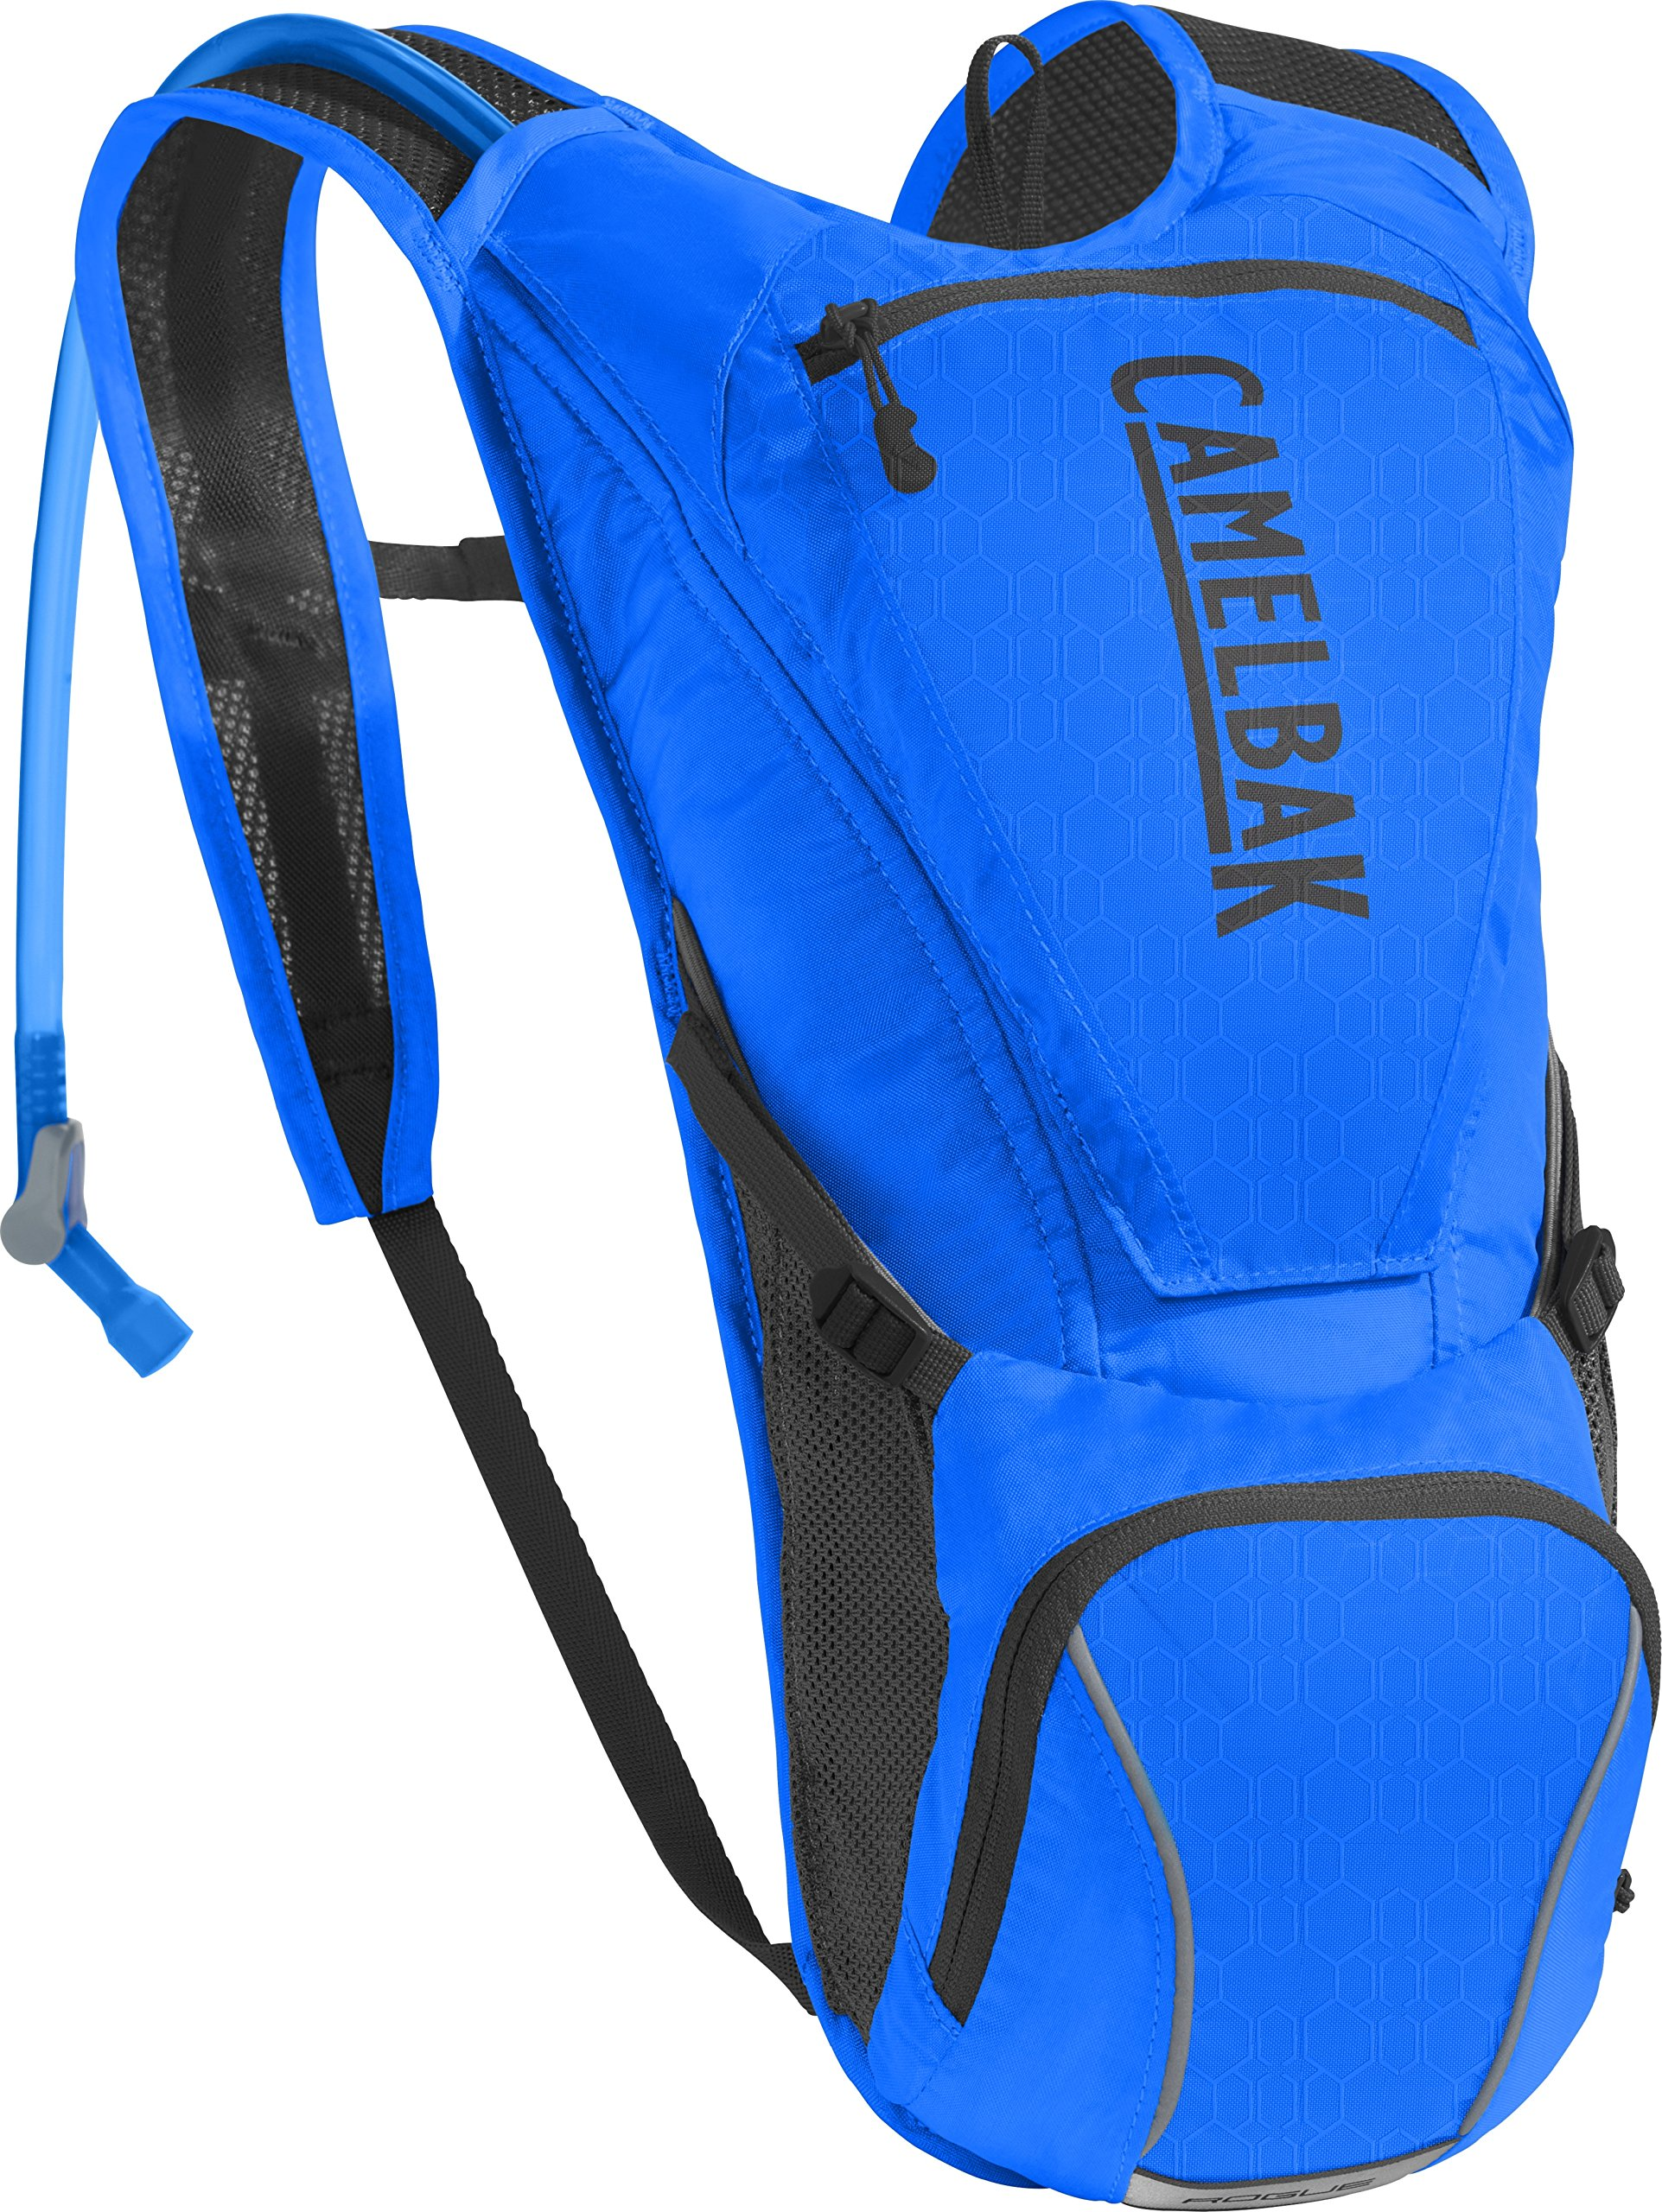 CamelBak Rogue Crux Reservoir Hydration Pack, Carve Blue/Black, 2.5 L/85 oz by CamelBak